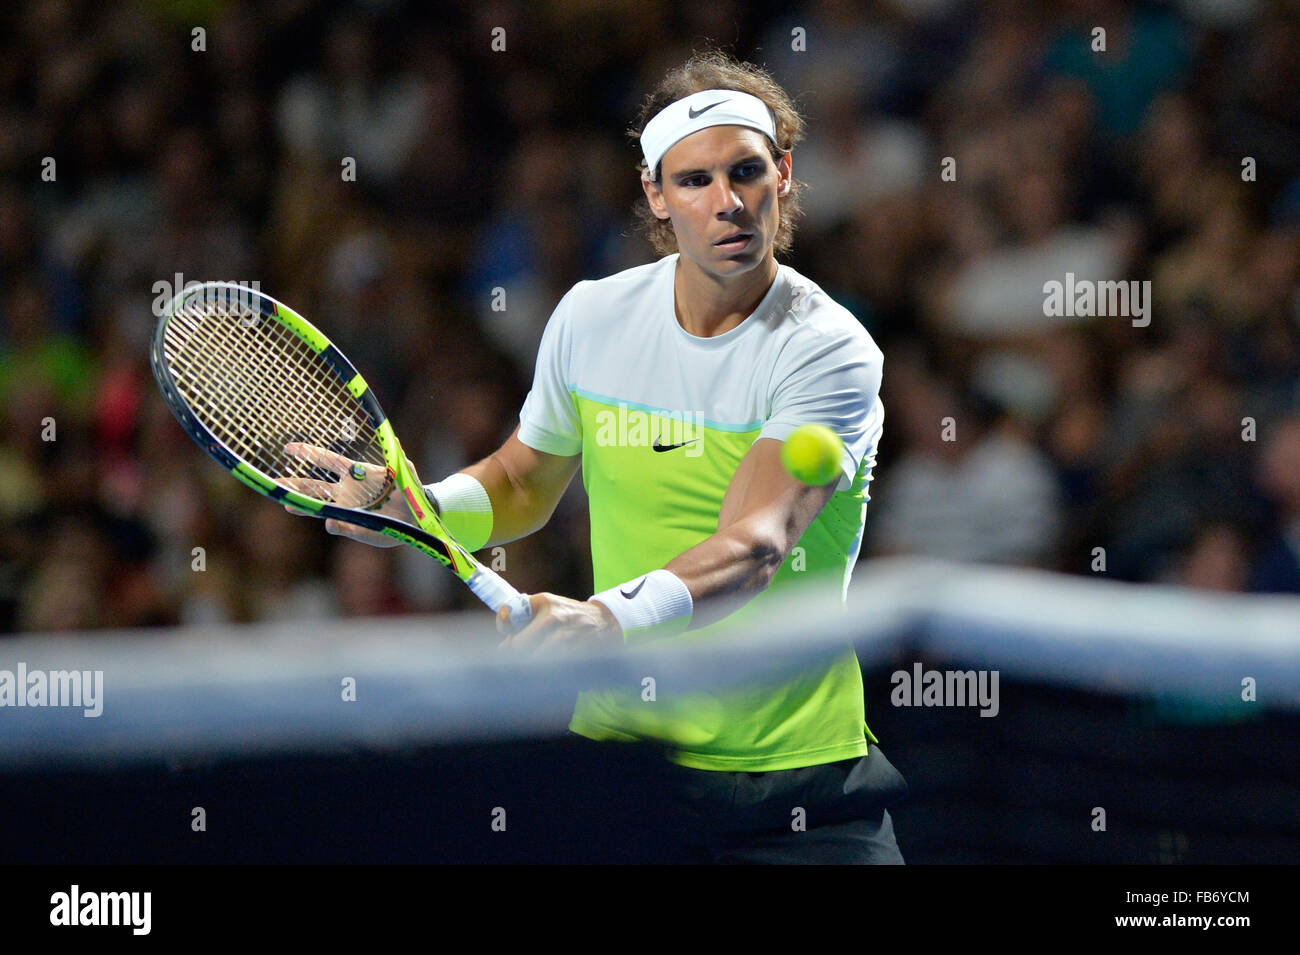 Sydney, Australia. 11th January, 2016. Rafael Nada (ESP) in action against Lleyton Hewitt (AUS) during the FAST4 Stock Photo